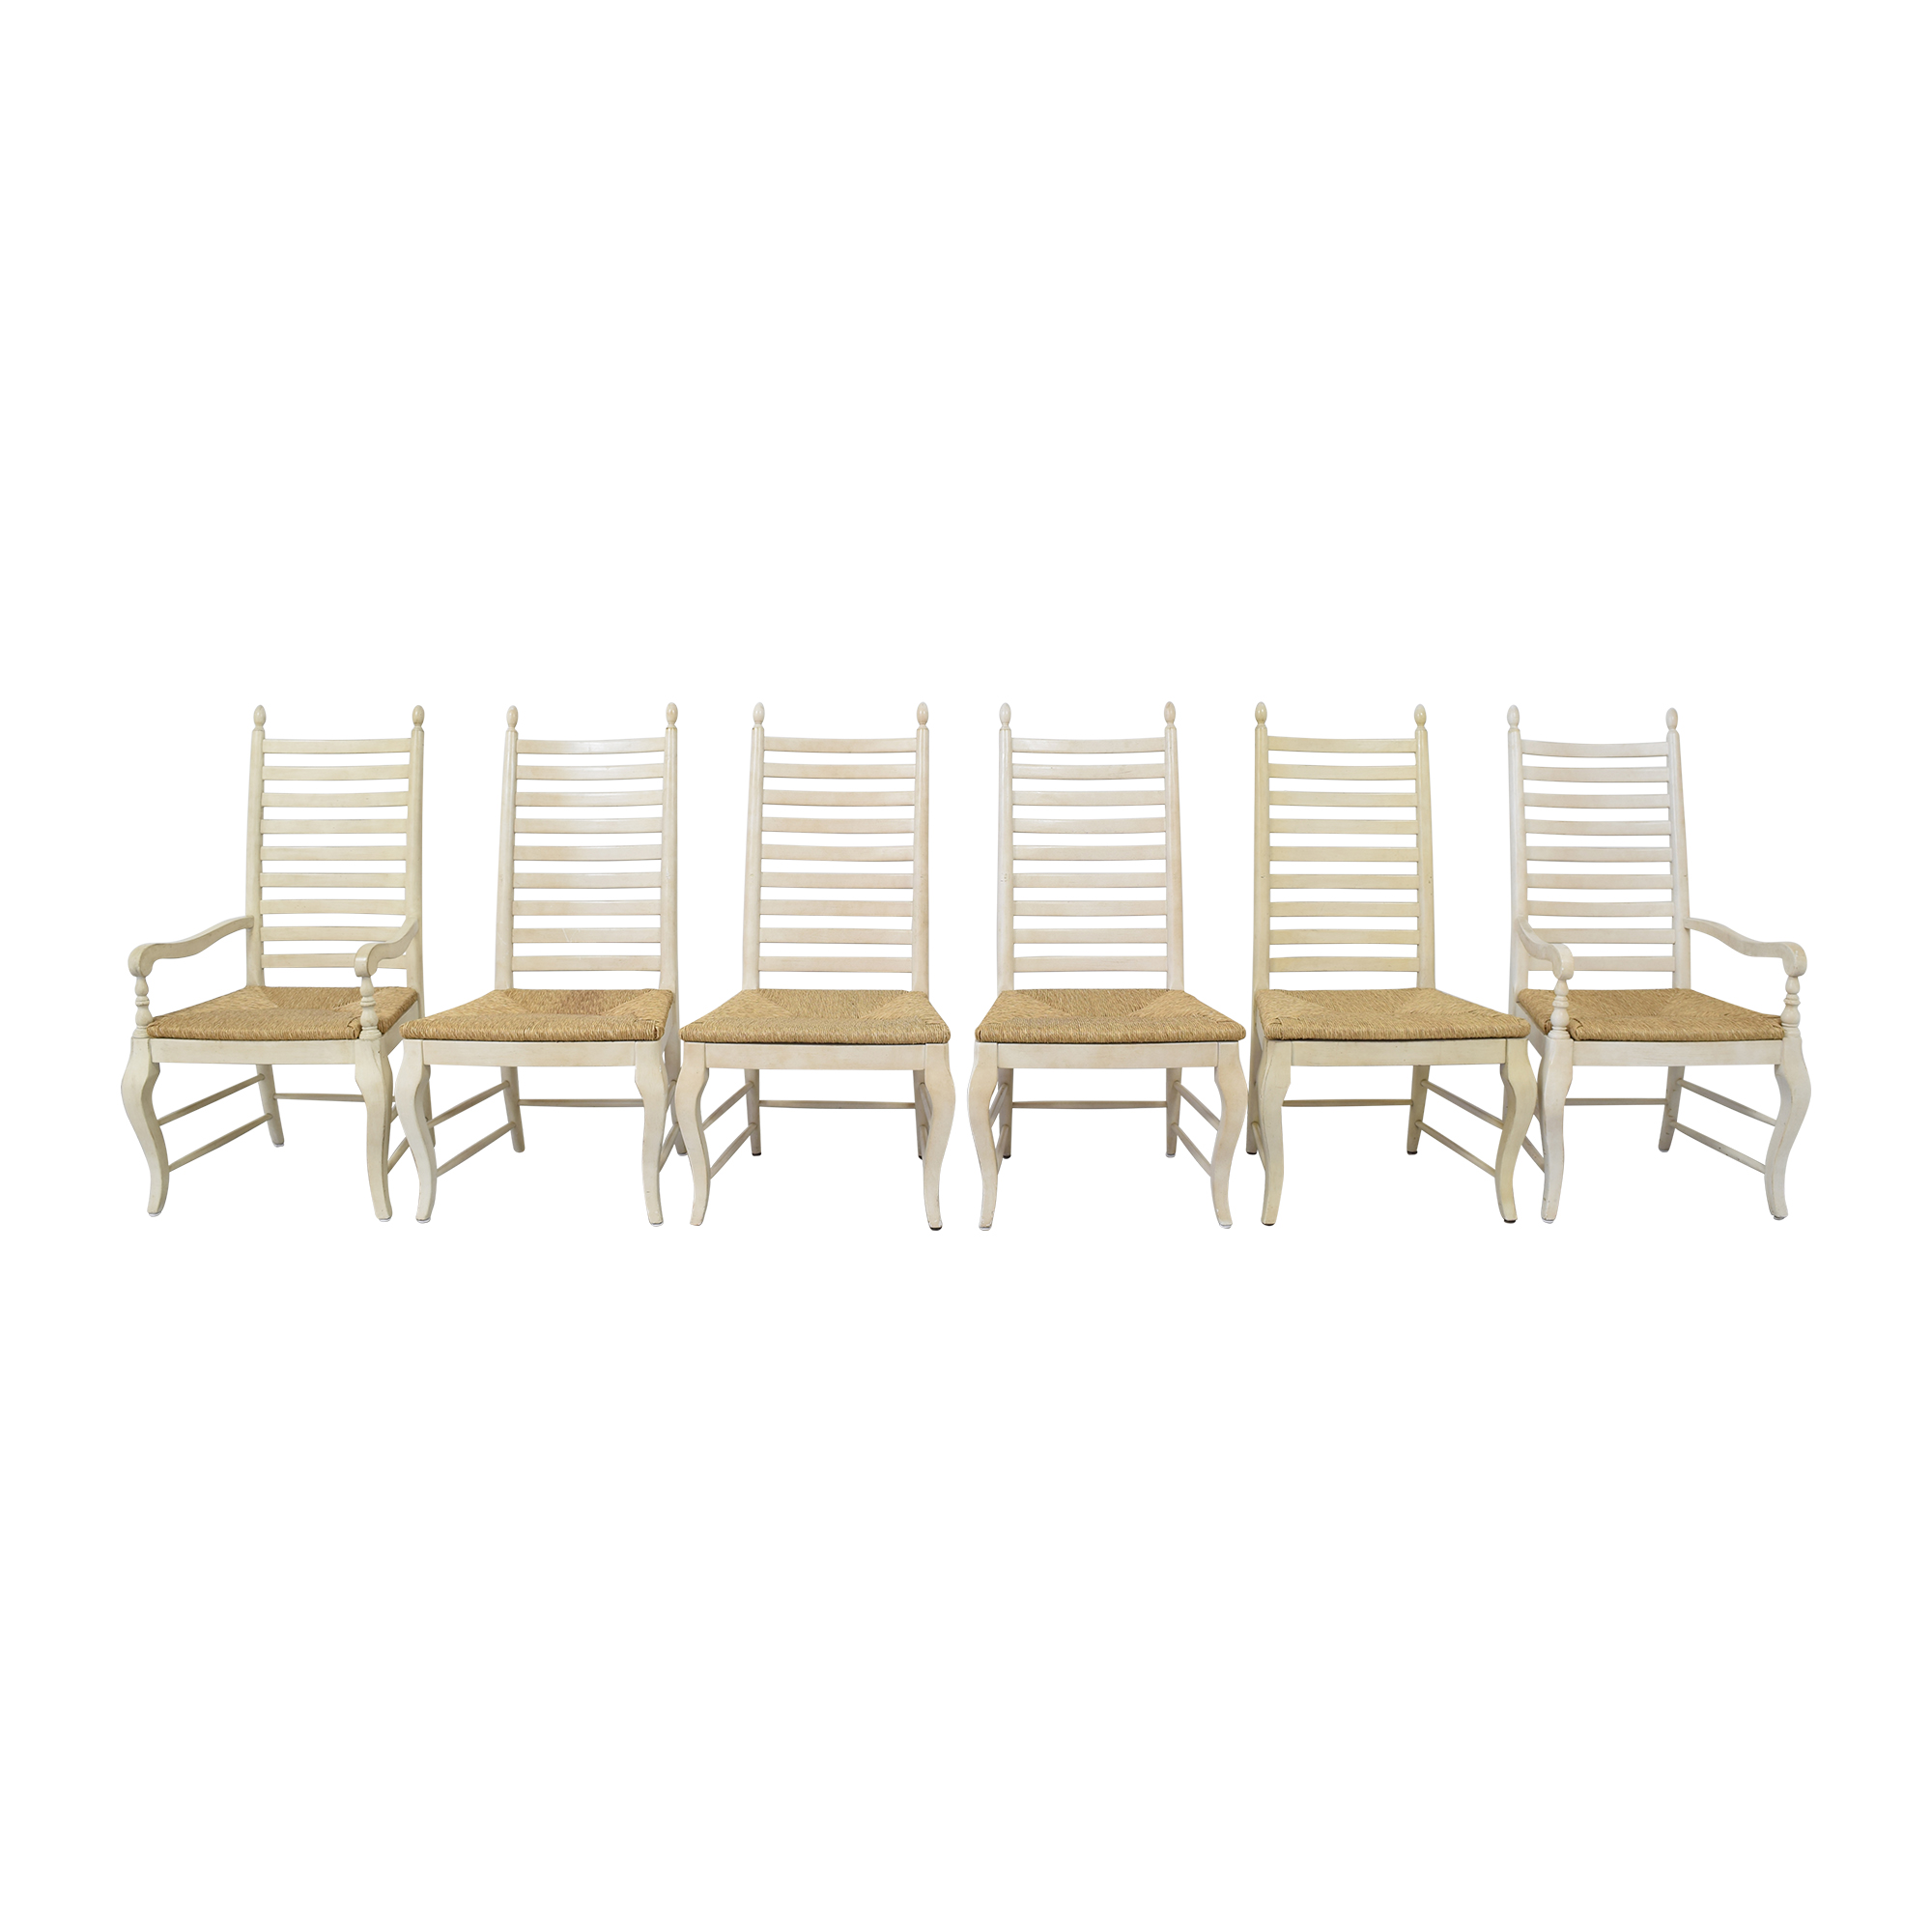 Ethan Allen Ethan Allen Ladder Back Side Chairs Dining Chairs